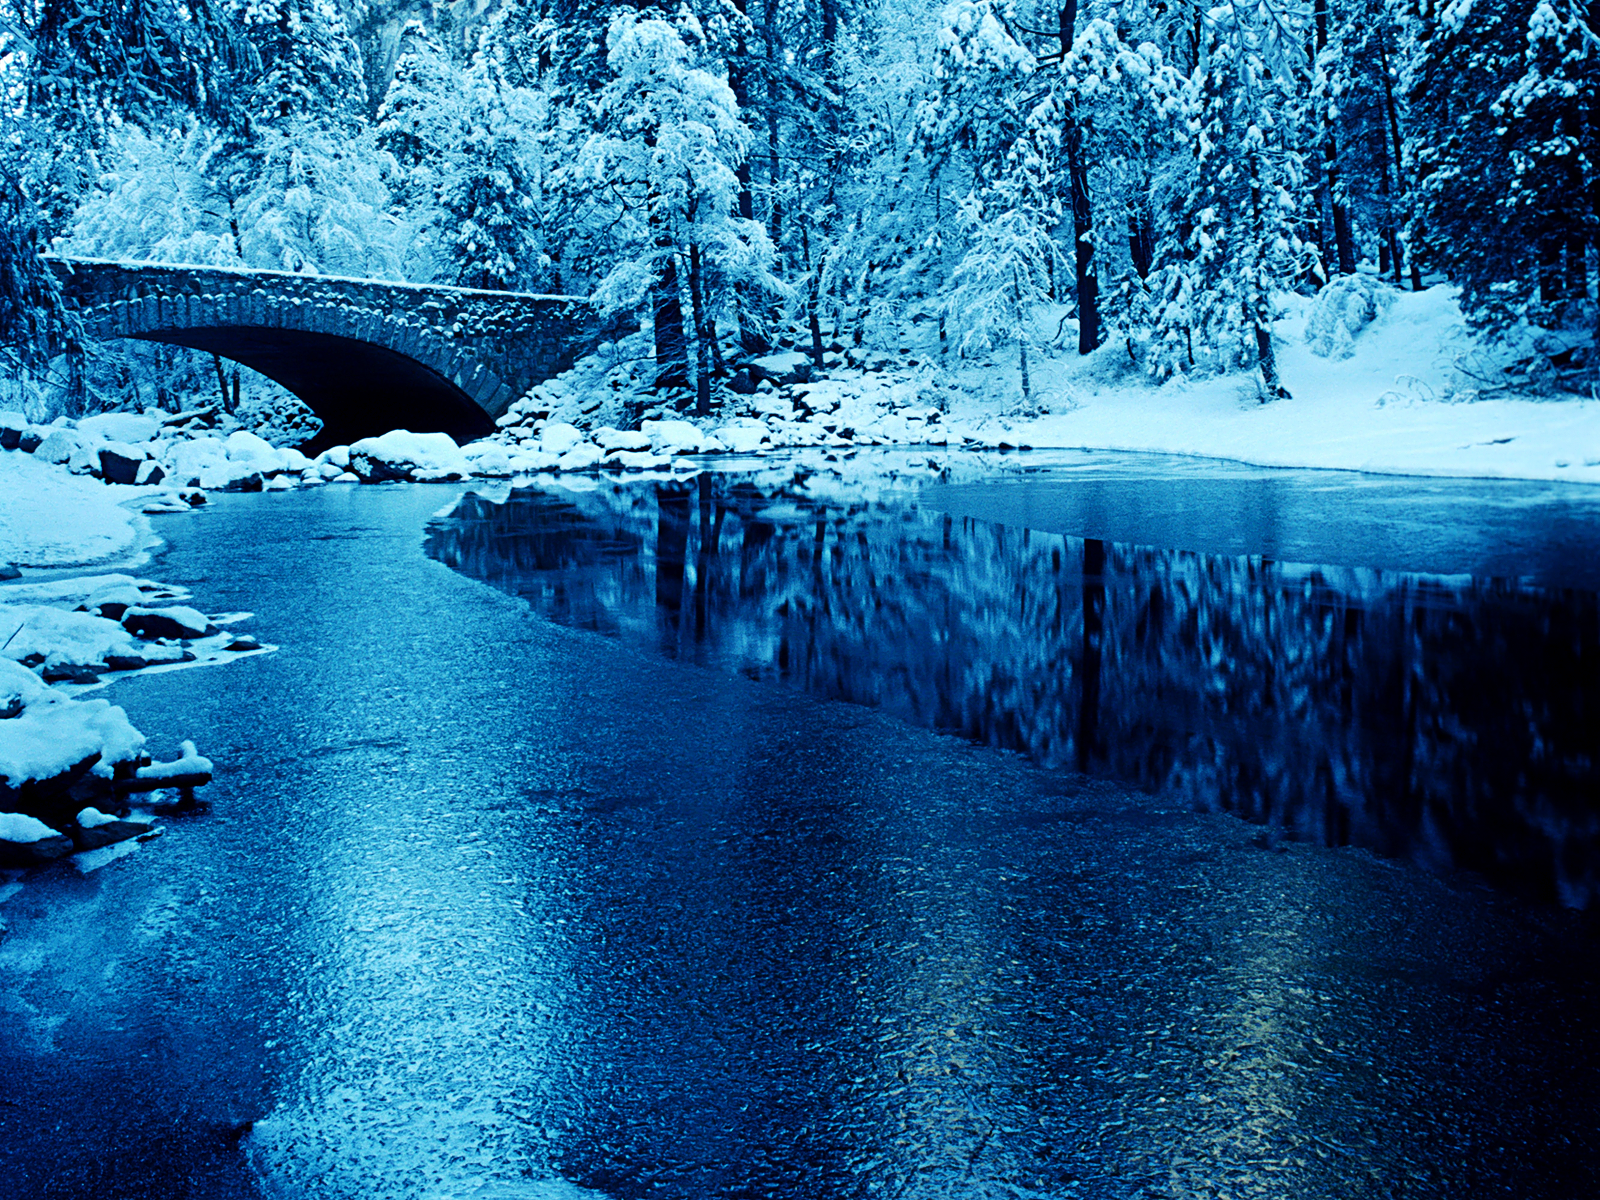 Yosemite Winter Snow wallpaper Conservatives Mistake 1600x1200